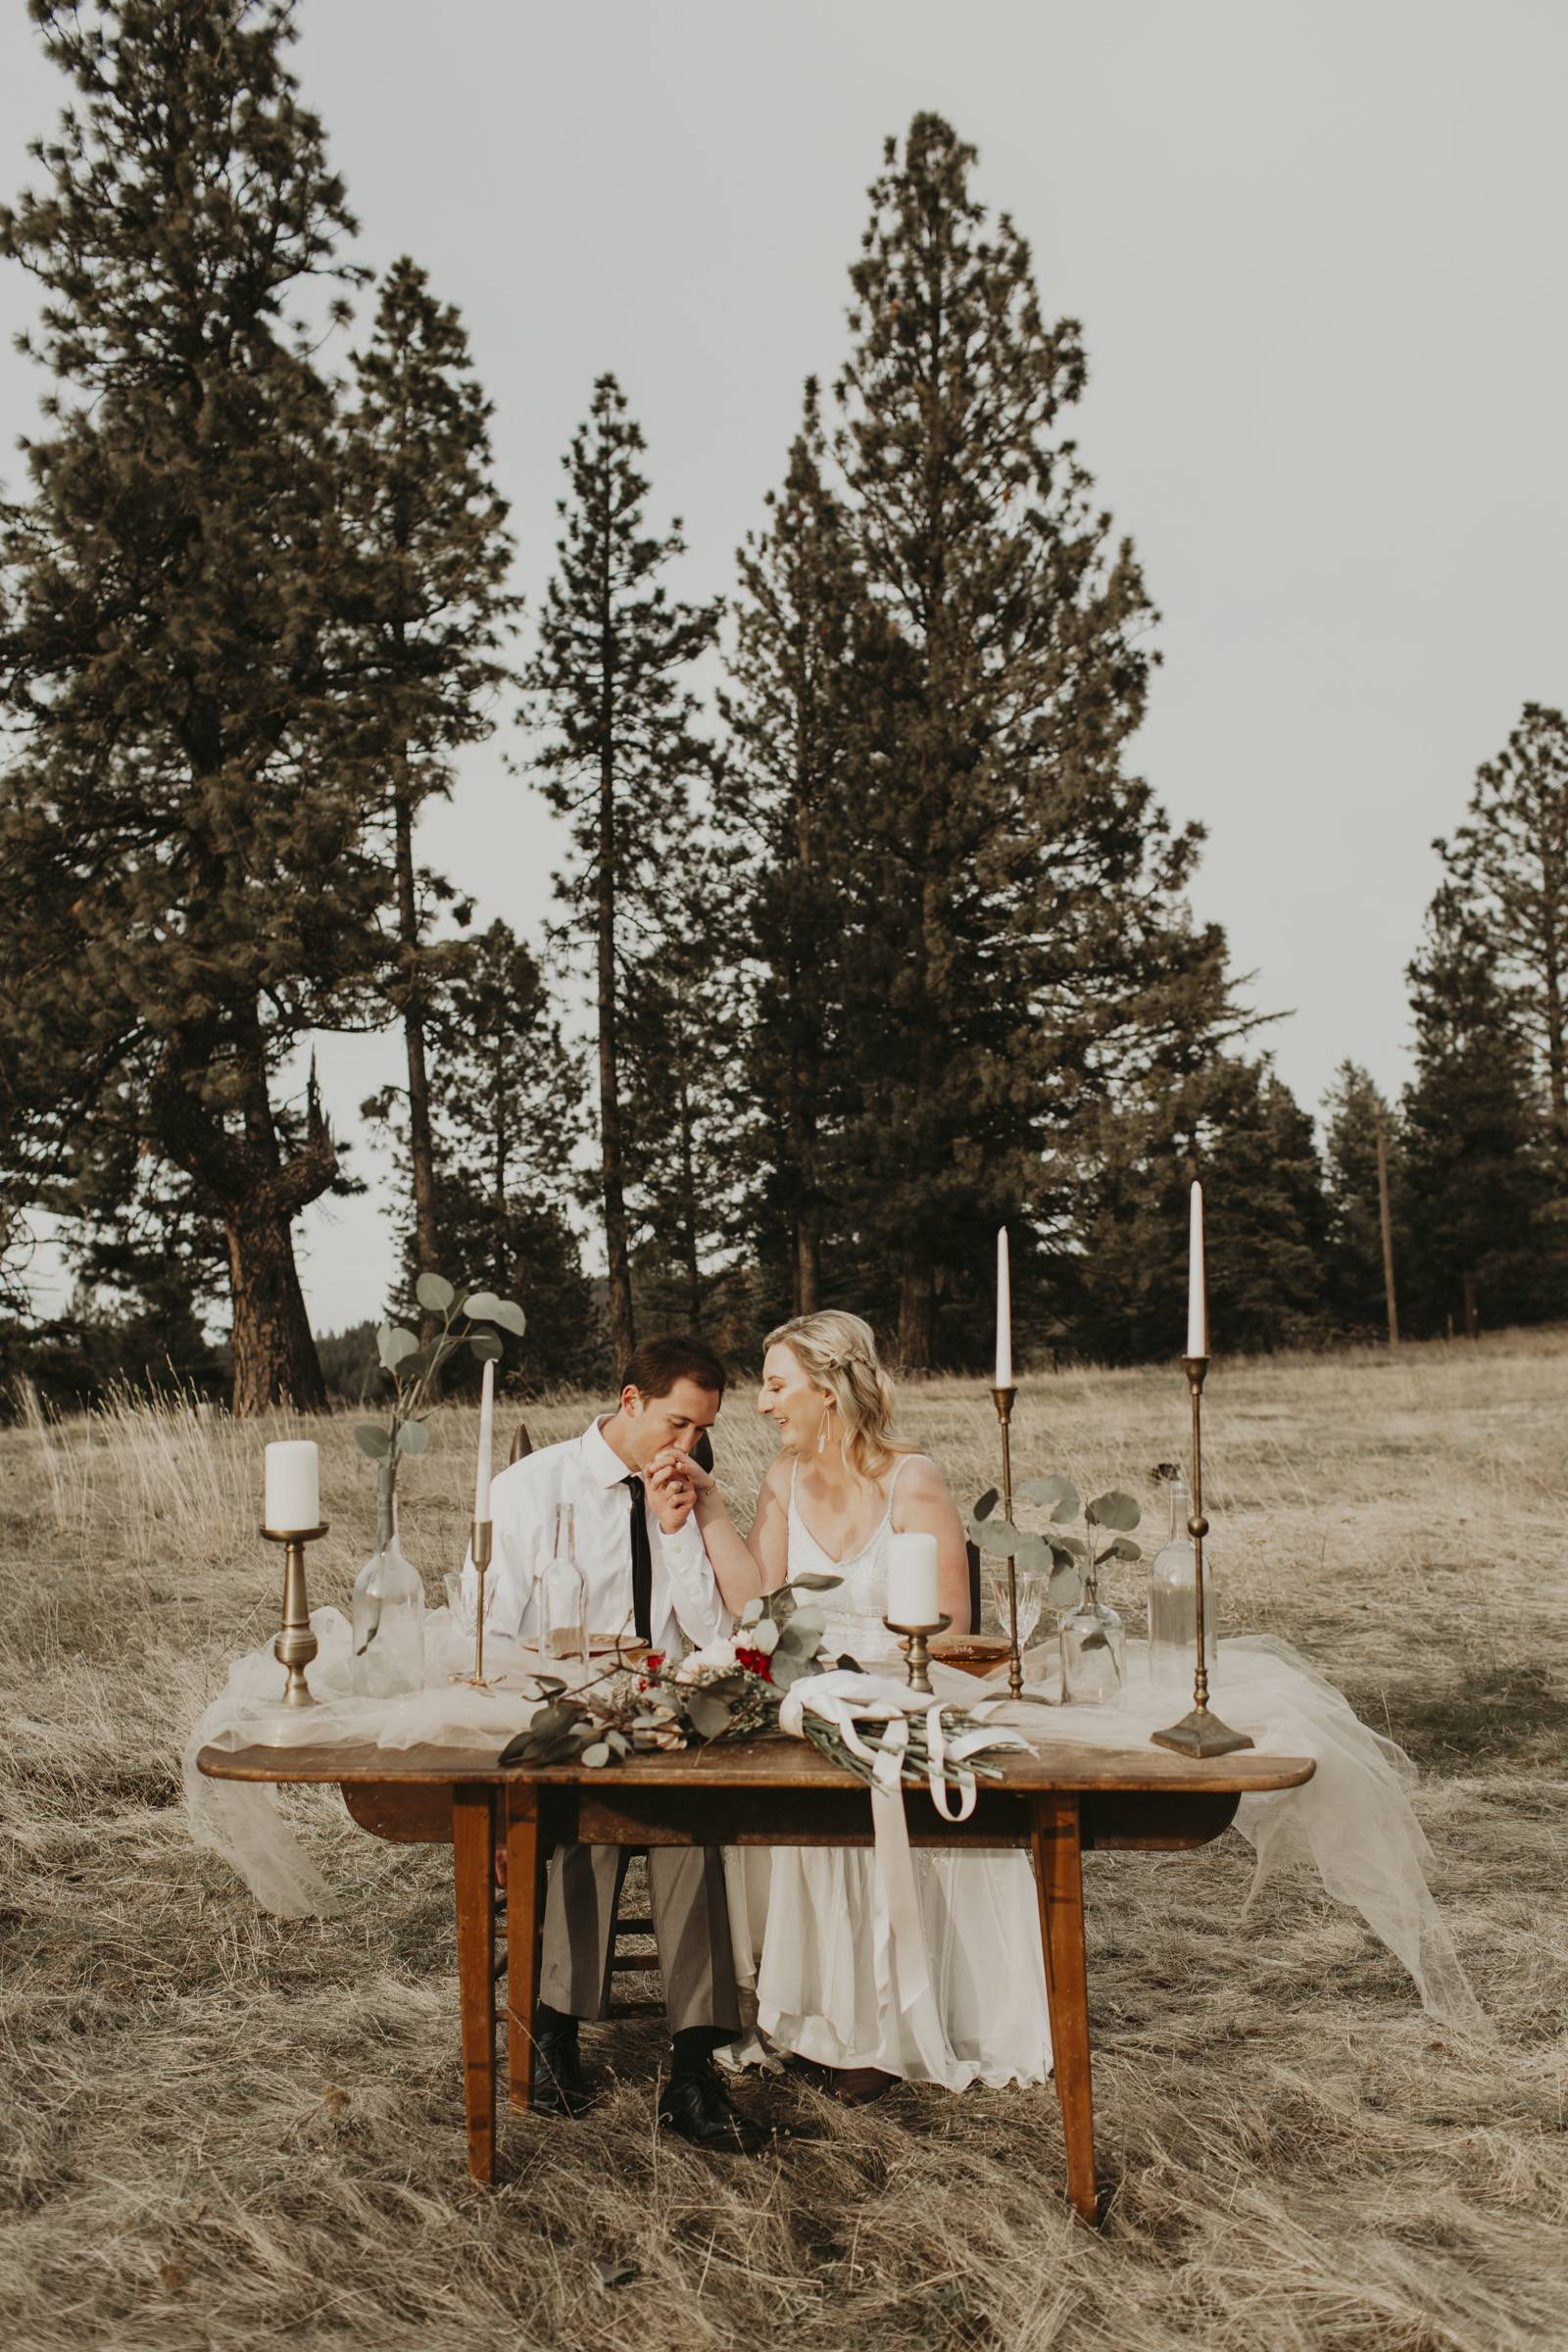 Vintage Sweetheart Table | Sweet Intimate Styled Elopement On The Palouse